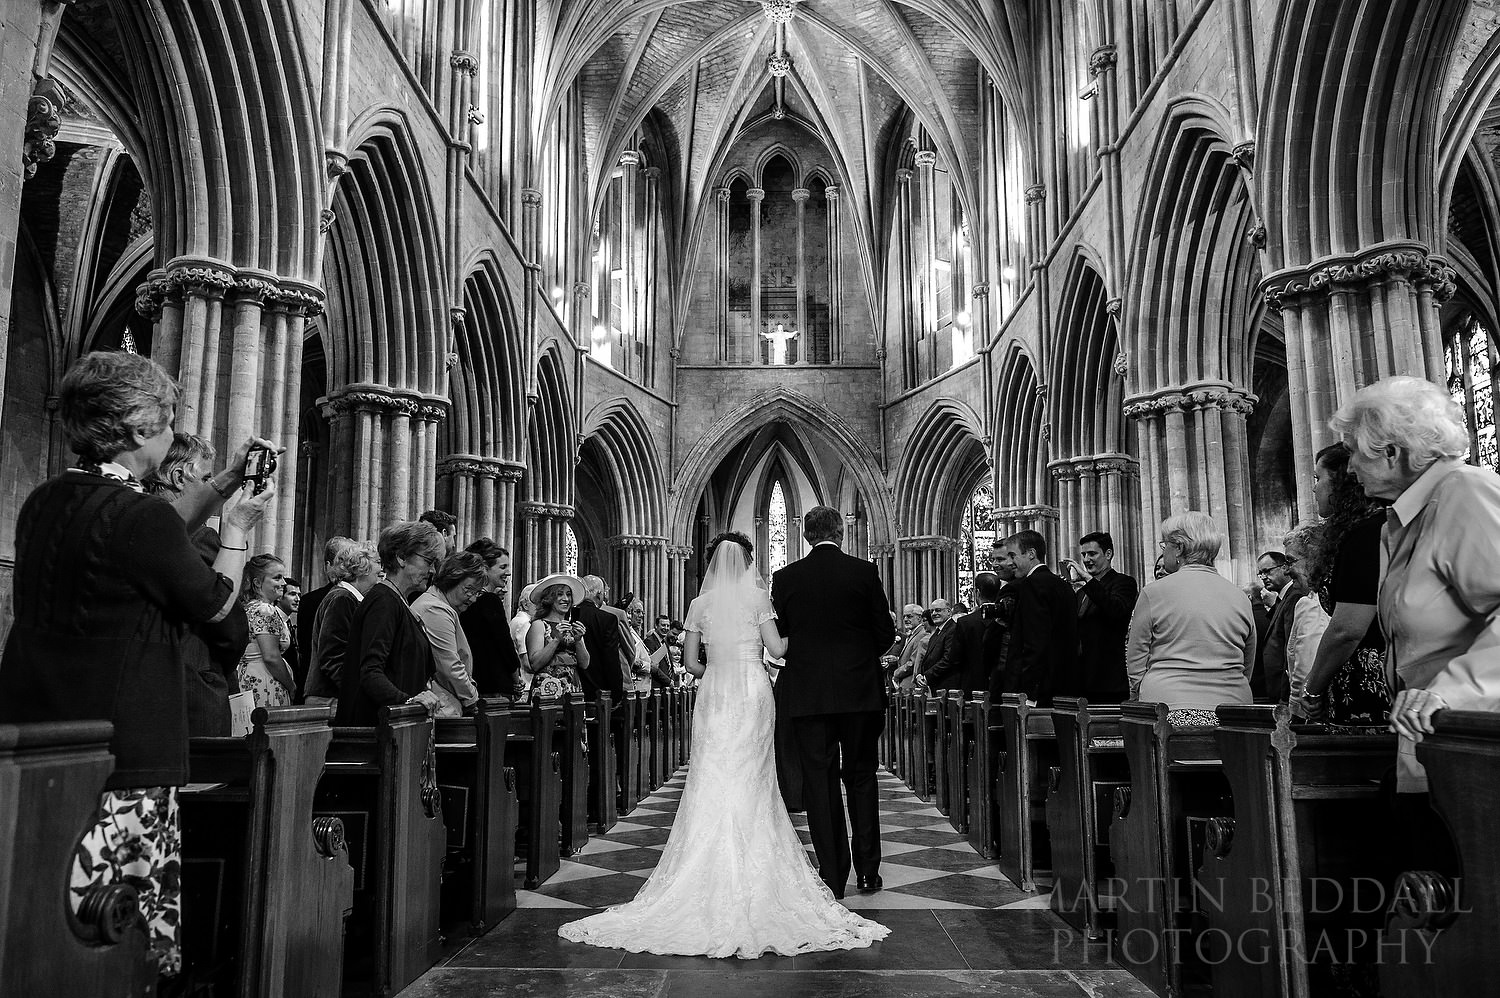 Bride and her father walk down the aisle at Pershore Abbey wedding